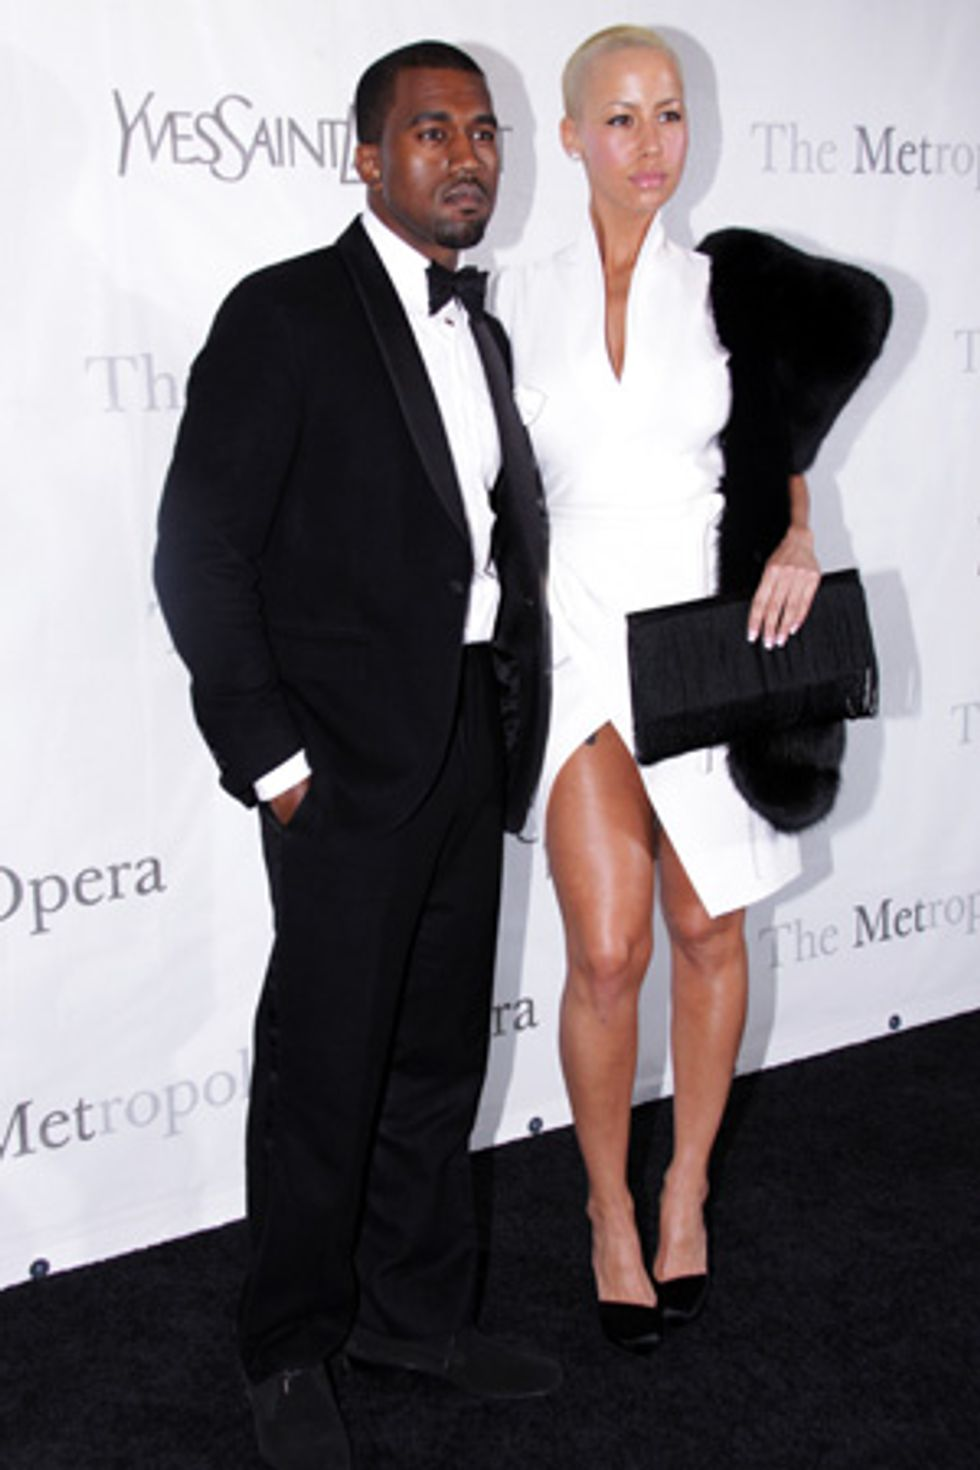 About Last Night... The 125th Anniversary of the Metropolitan Opera